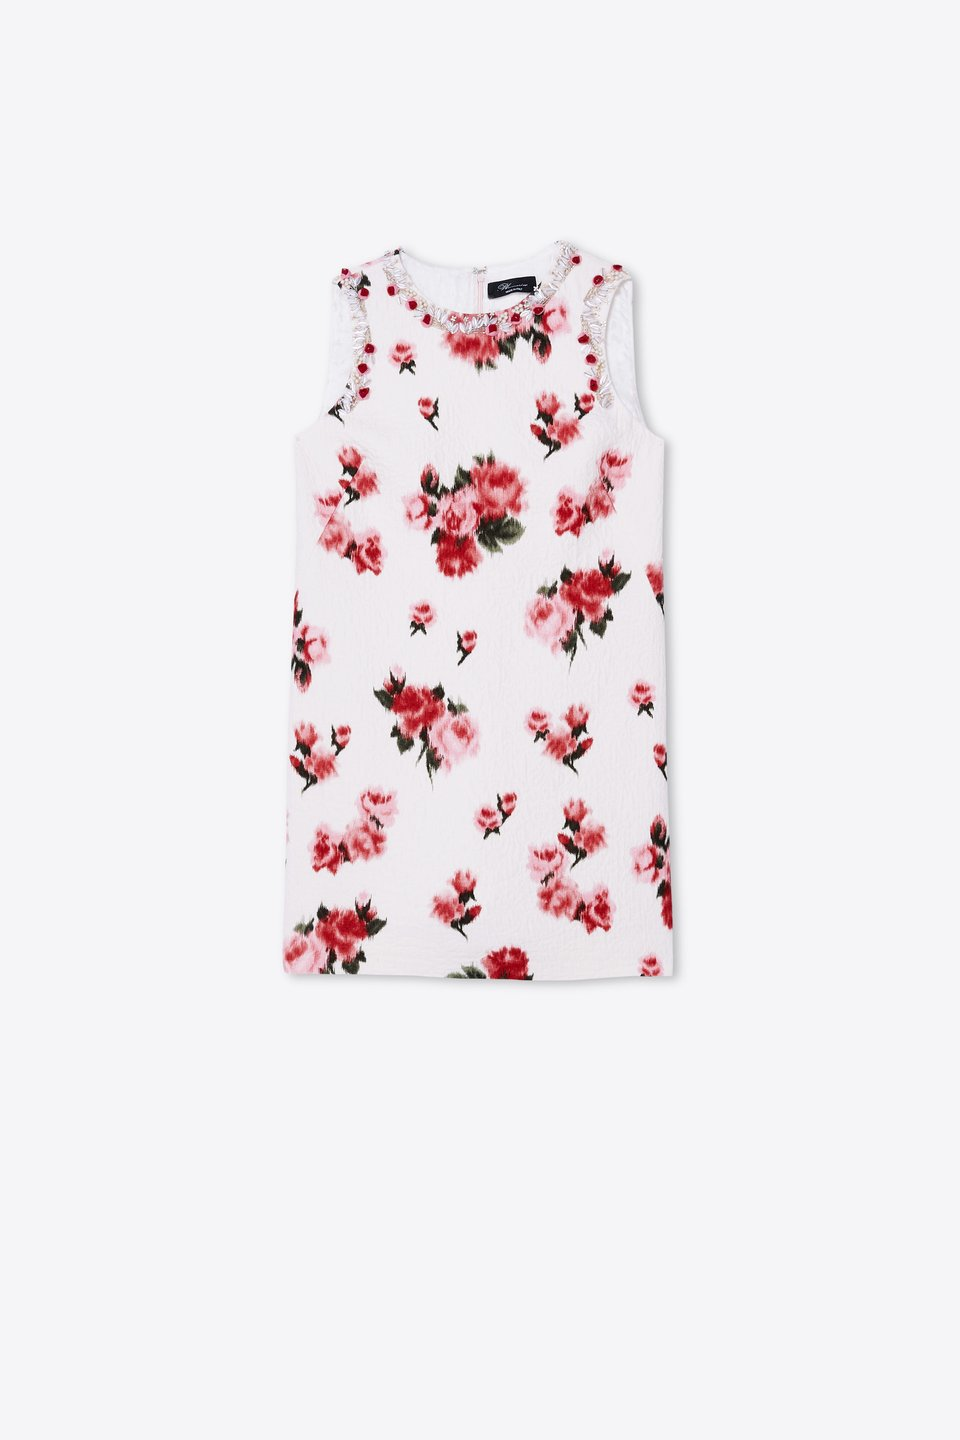 Rose print dress with embroidery